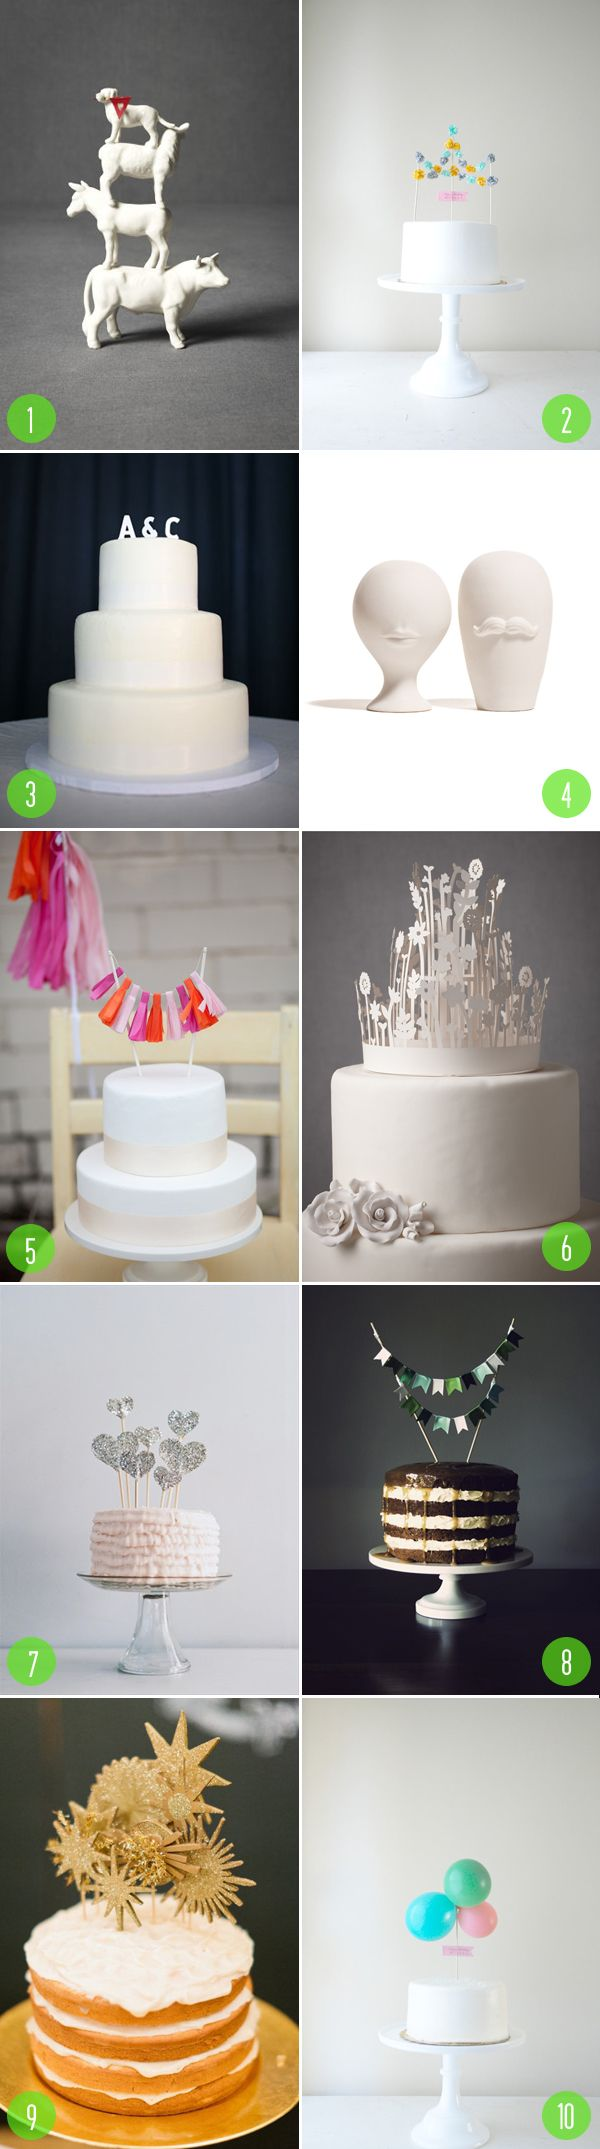 top 10: cake toppers 2